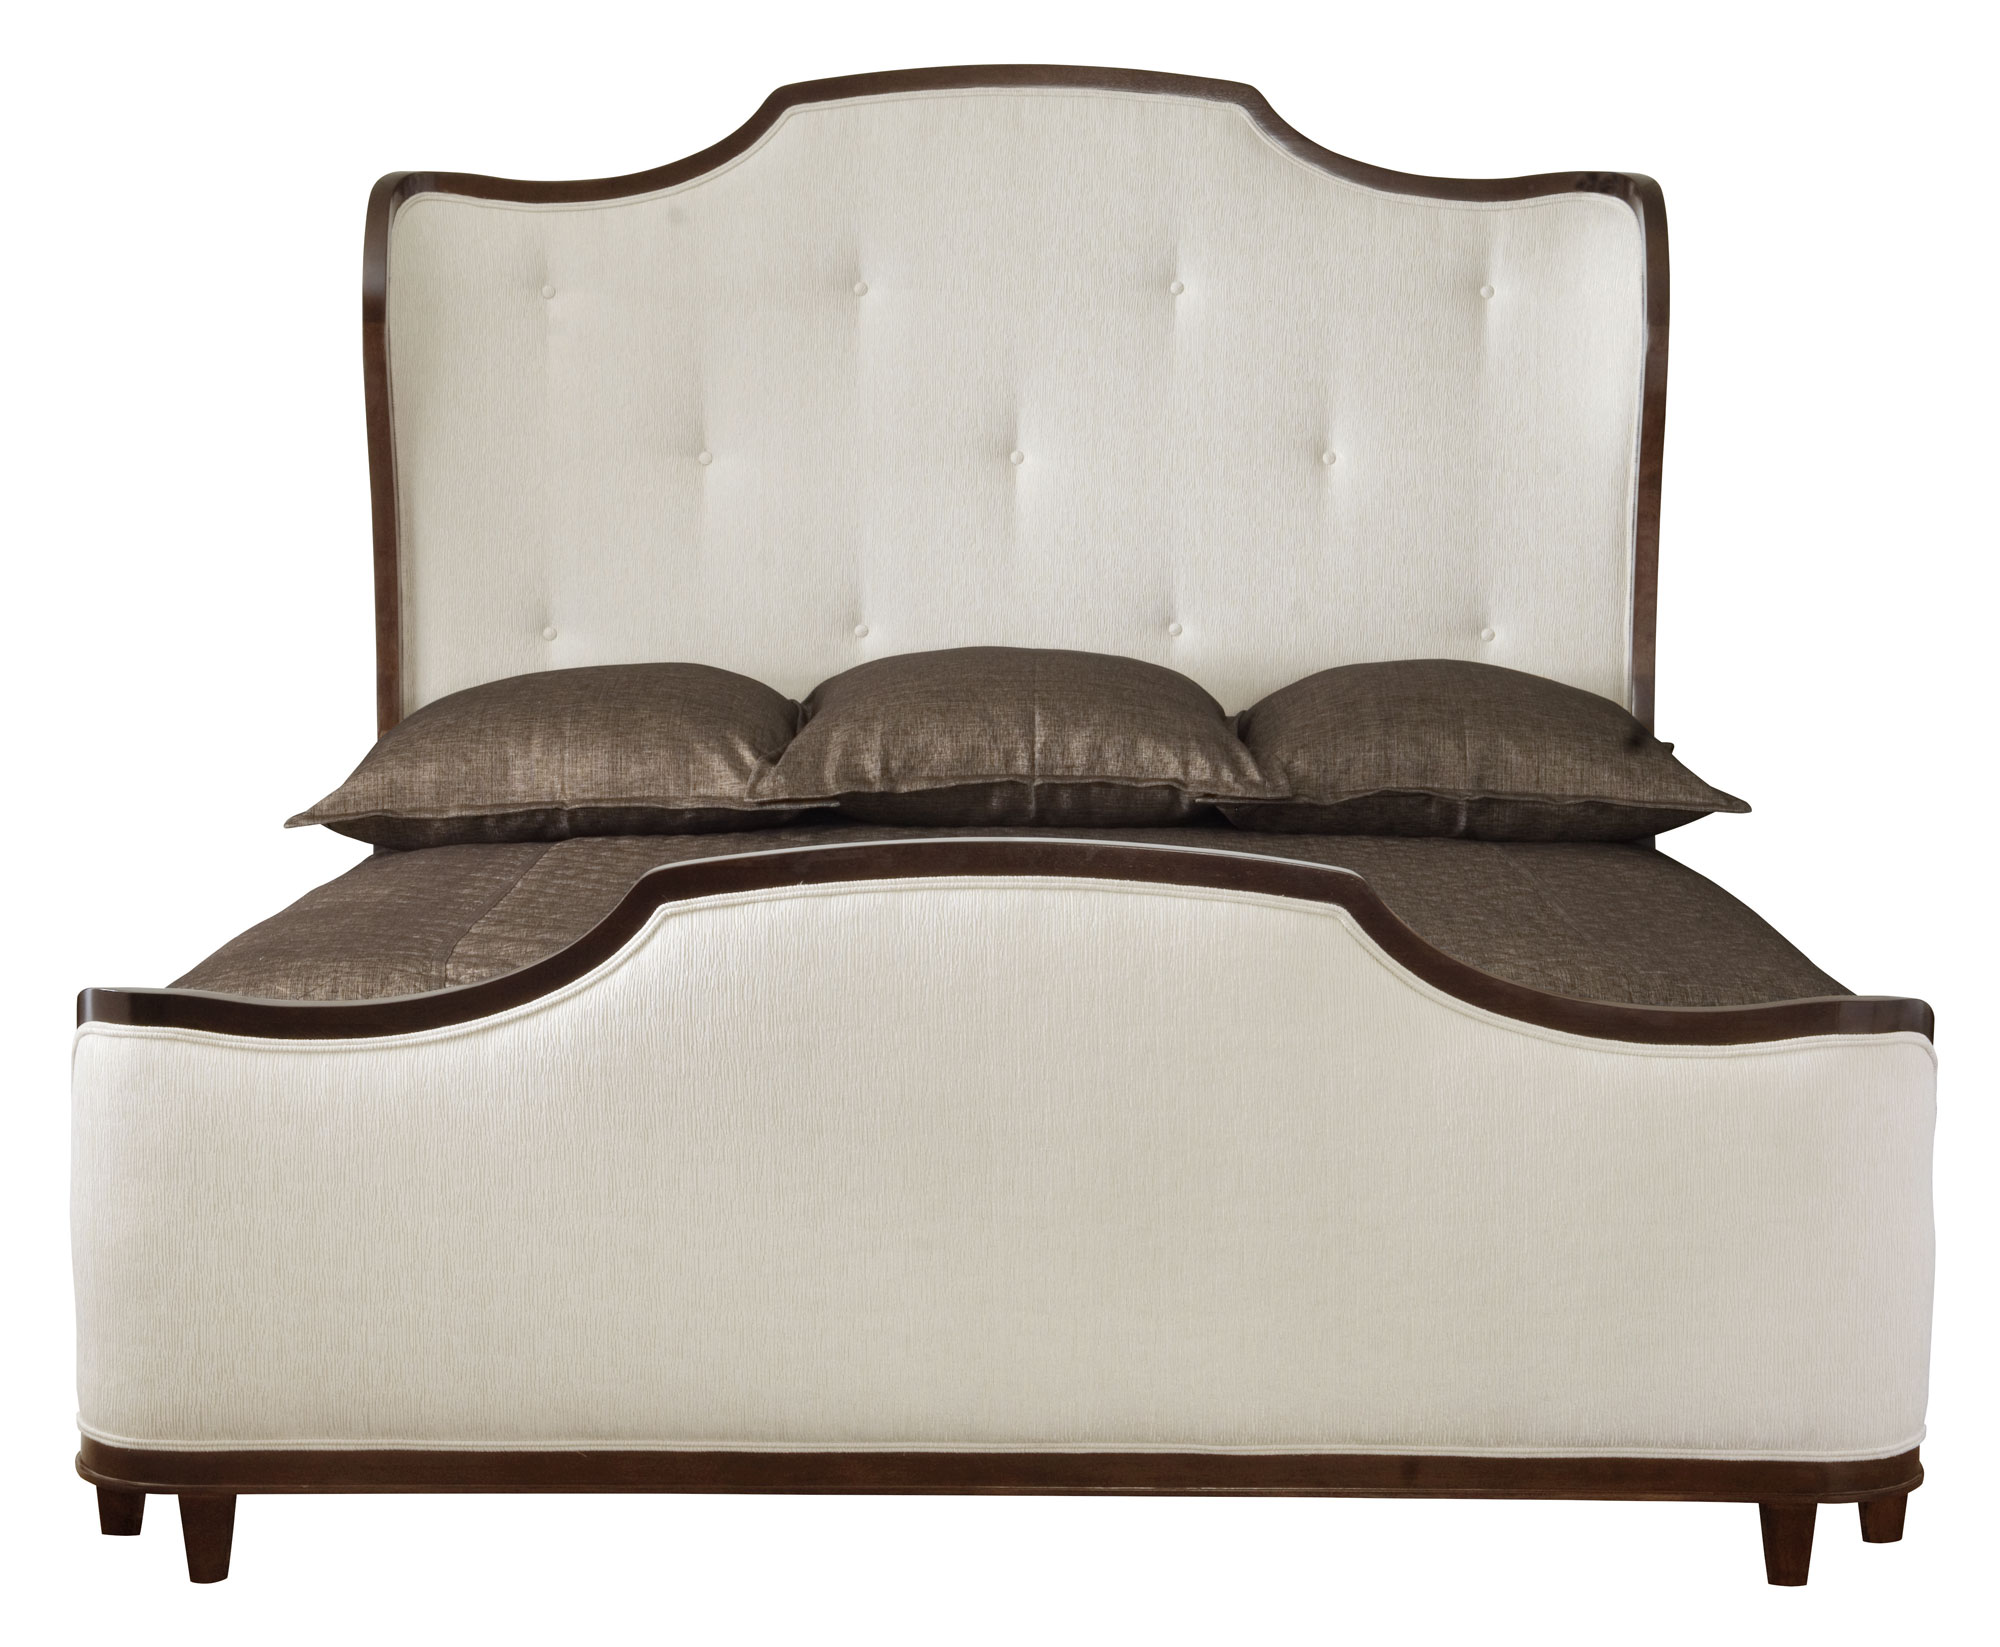 Miraculous Upholstered Panel Bed Bernhardt Home Interior And Landscaping Analalmasignezvosmurscom